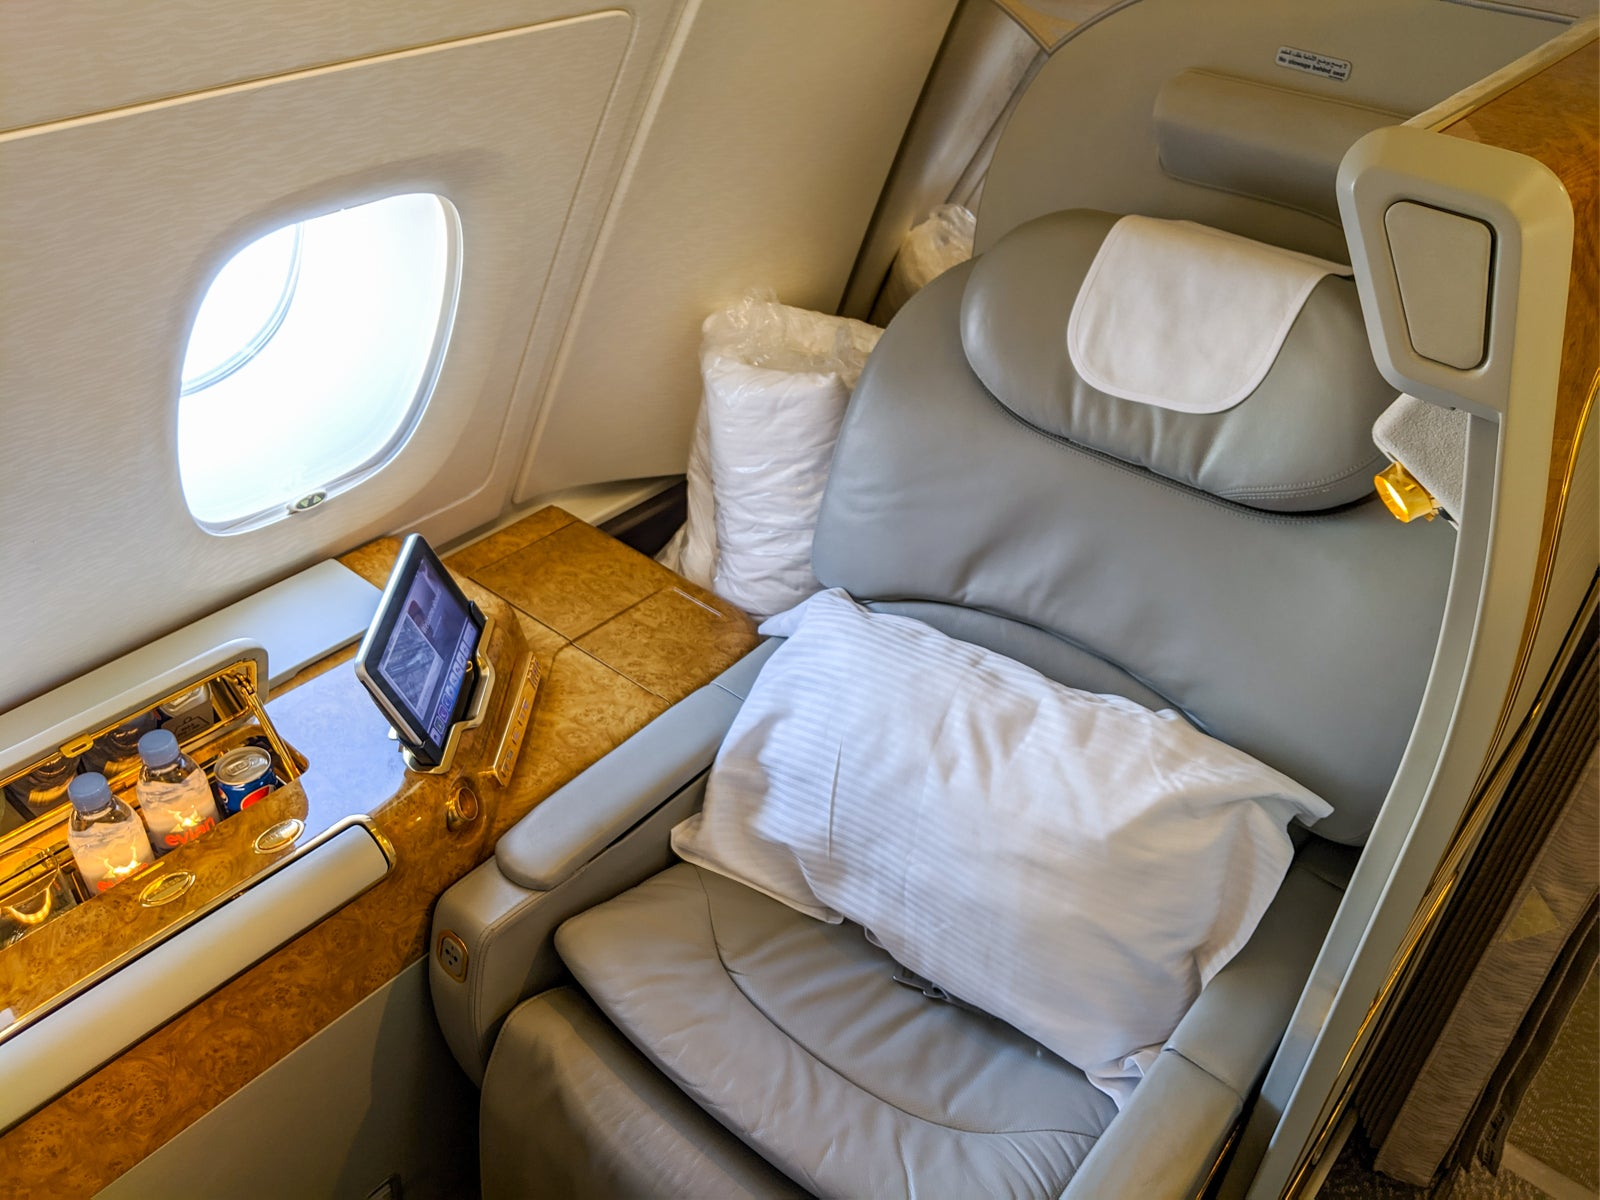 Review of Emirates A380 first class, Dubai to LA